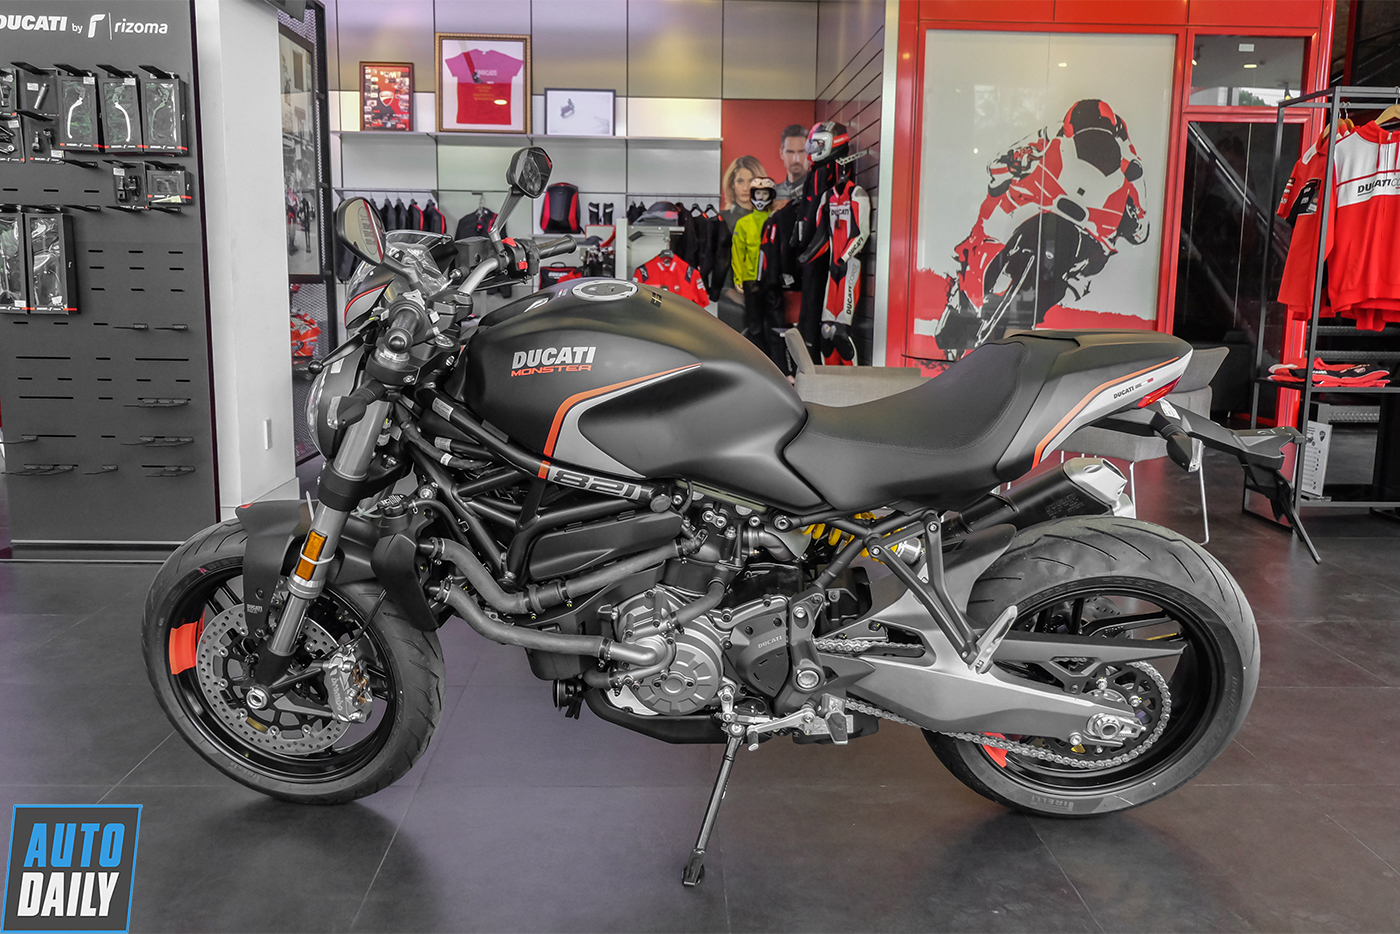 ducati-monster-821-stealth-24-1.jpg